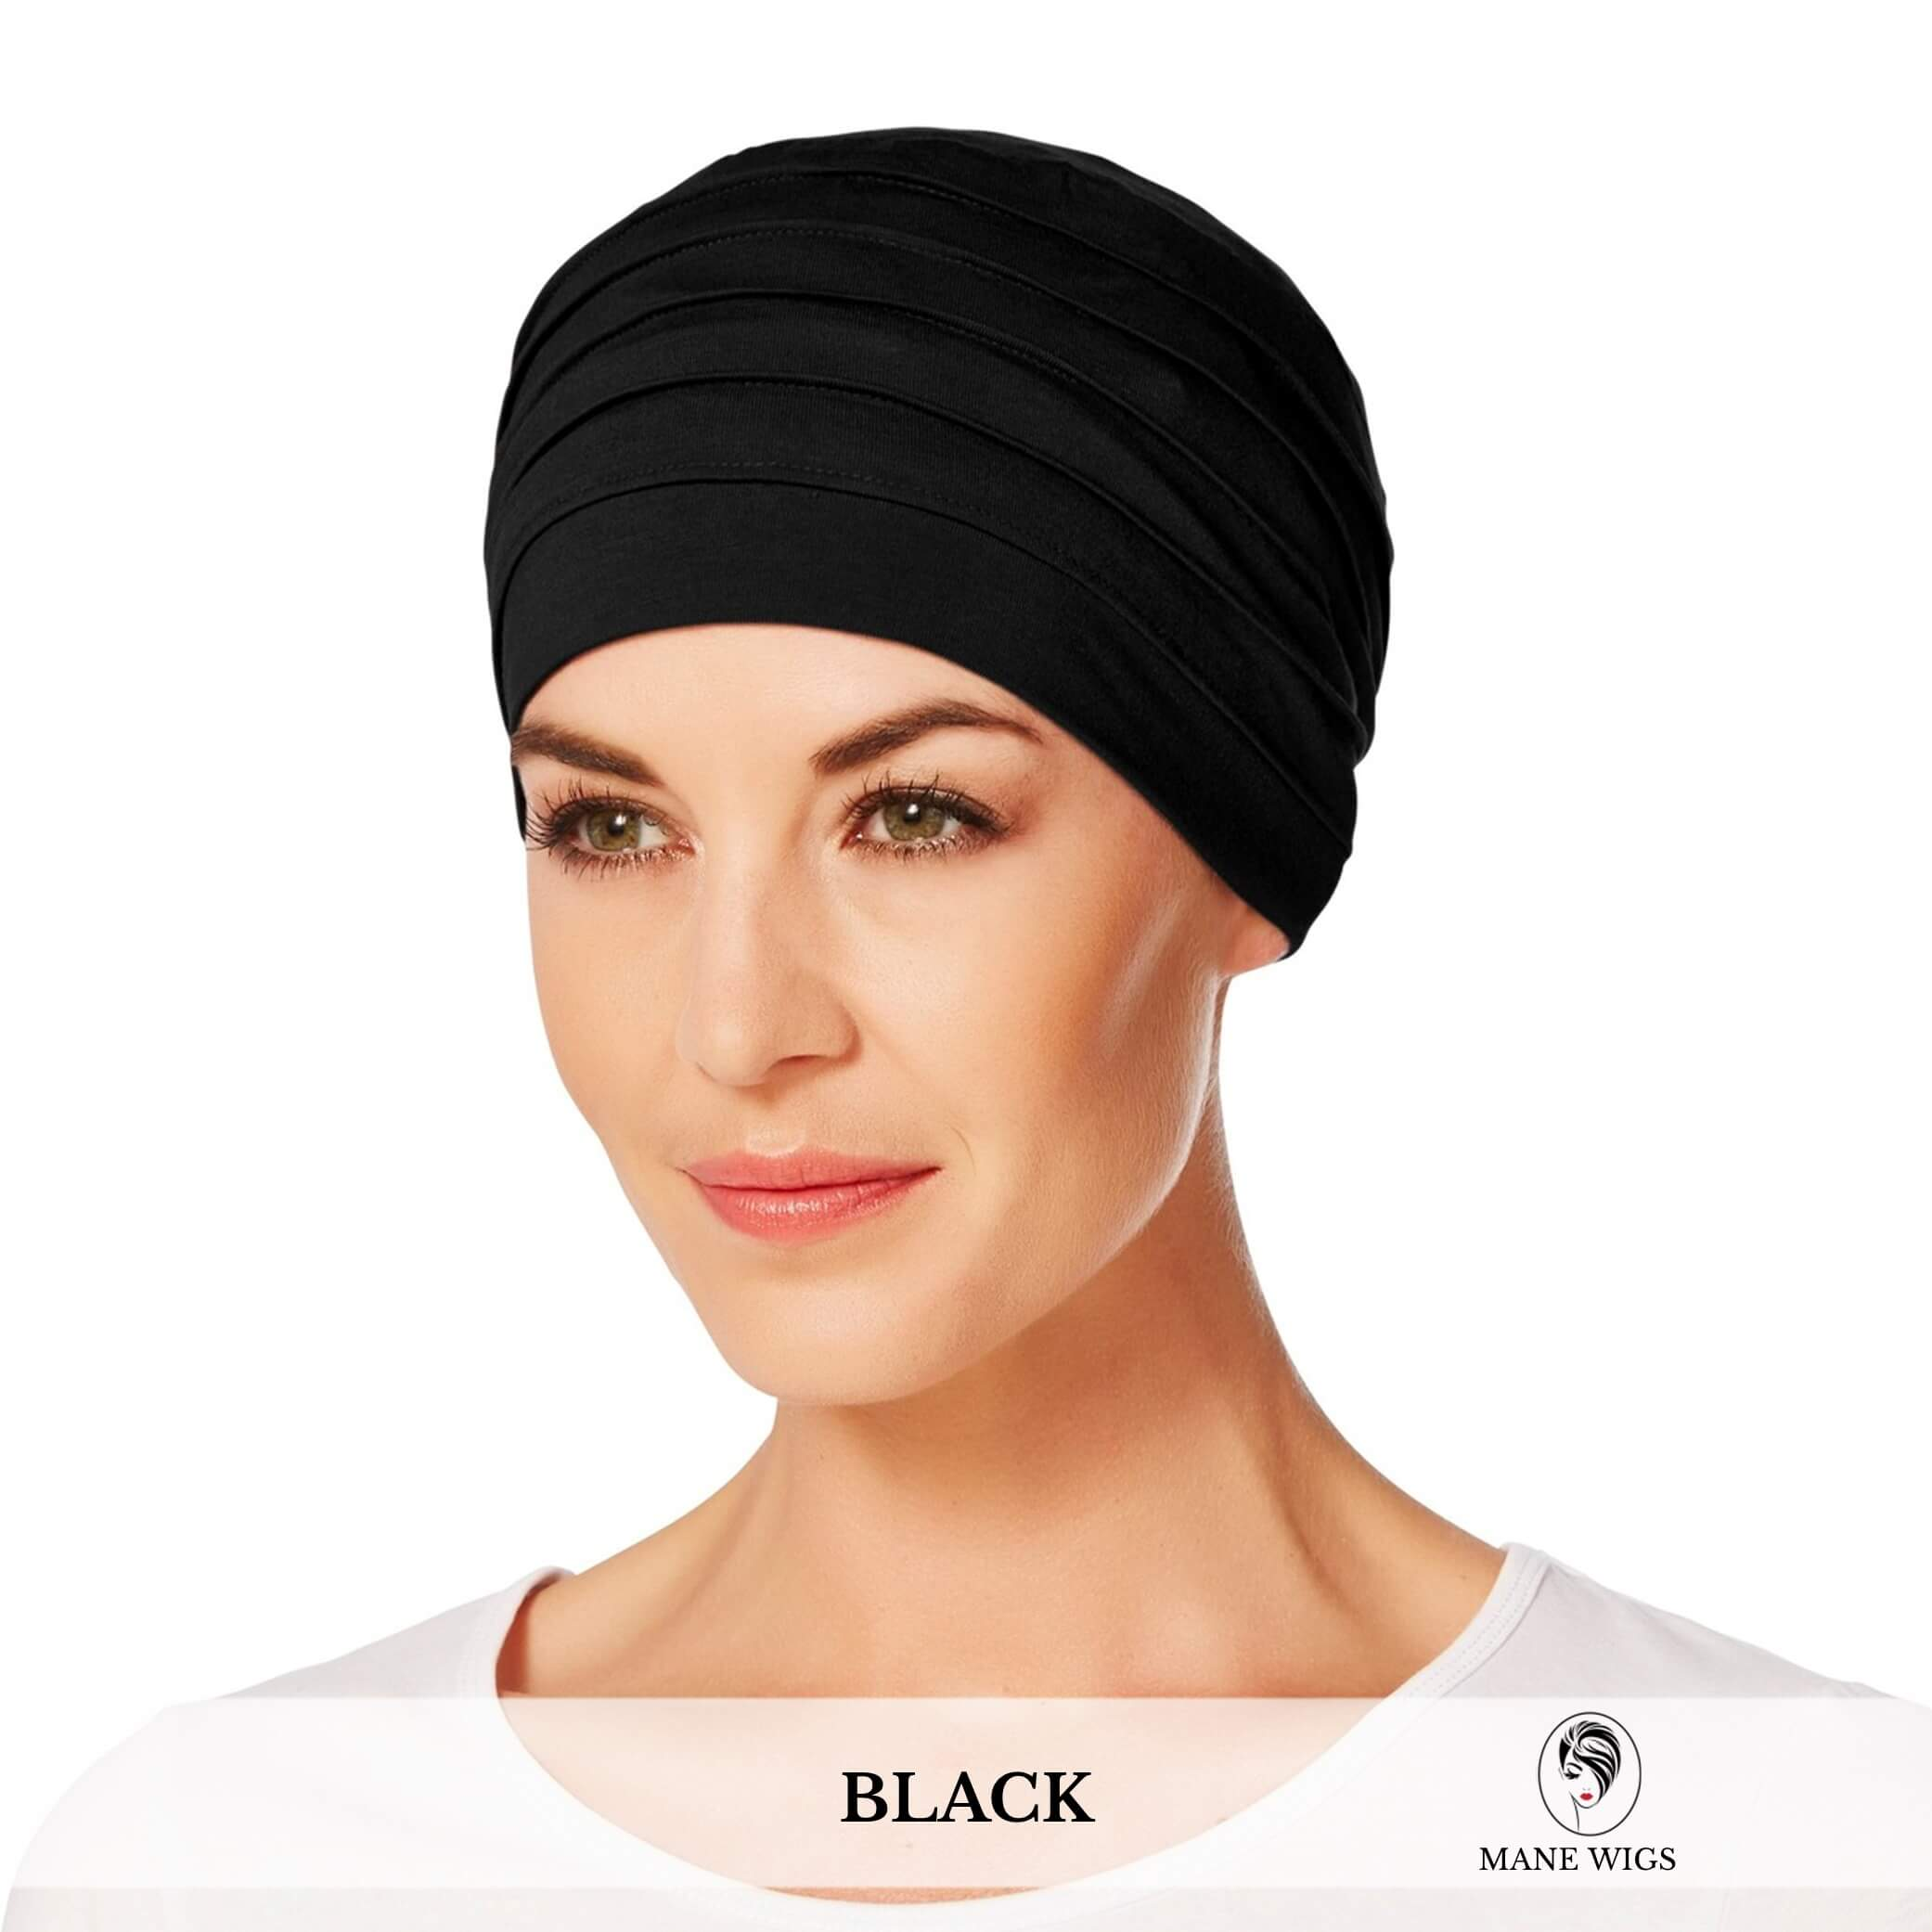 Christine Headwear Yoga Turban 211-Black